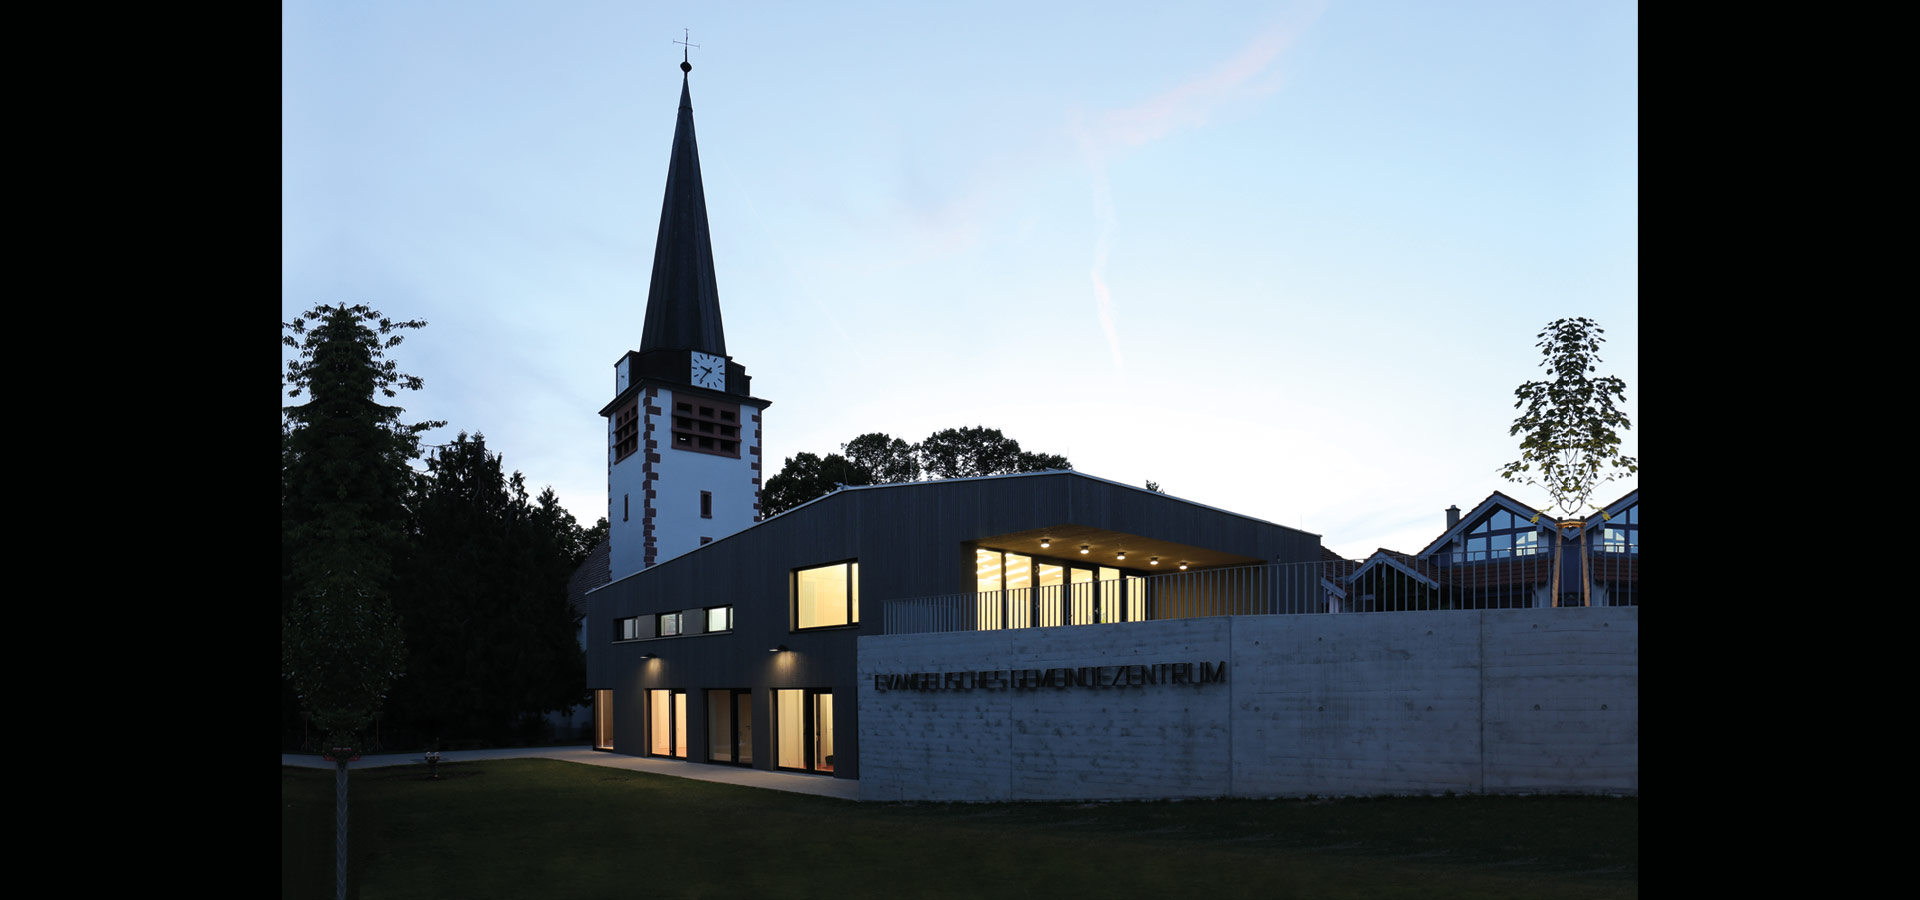 Luxsystem led luminaire lines of light community hall huchenfeld from outside